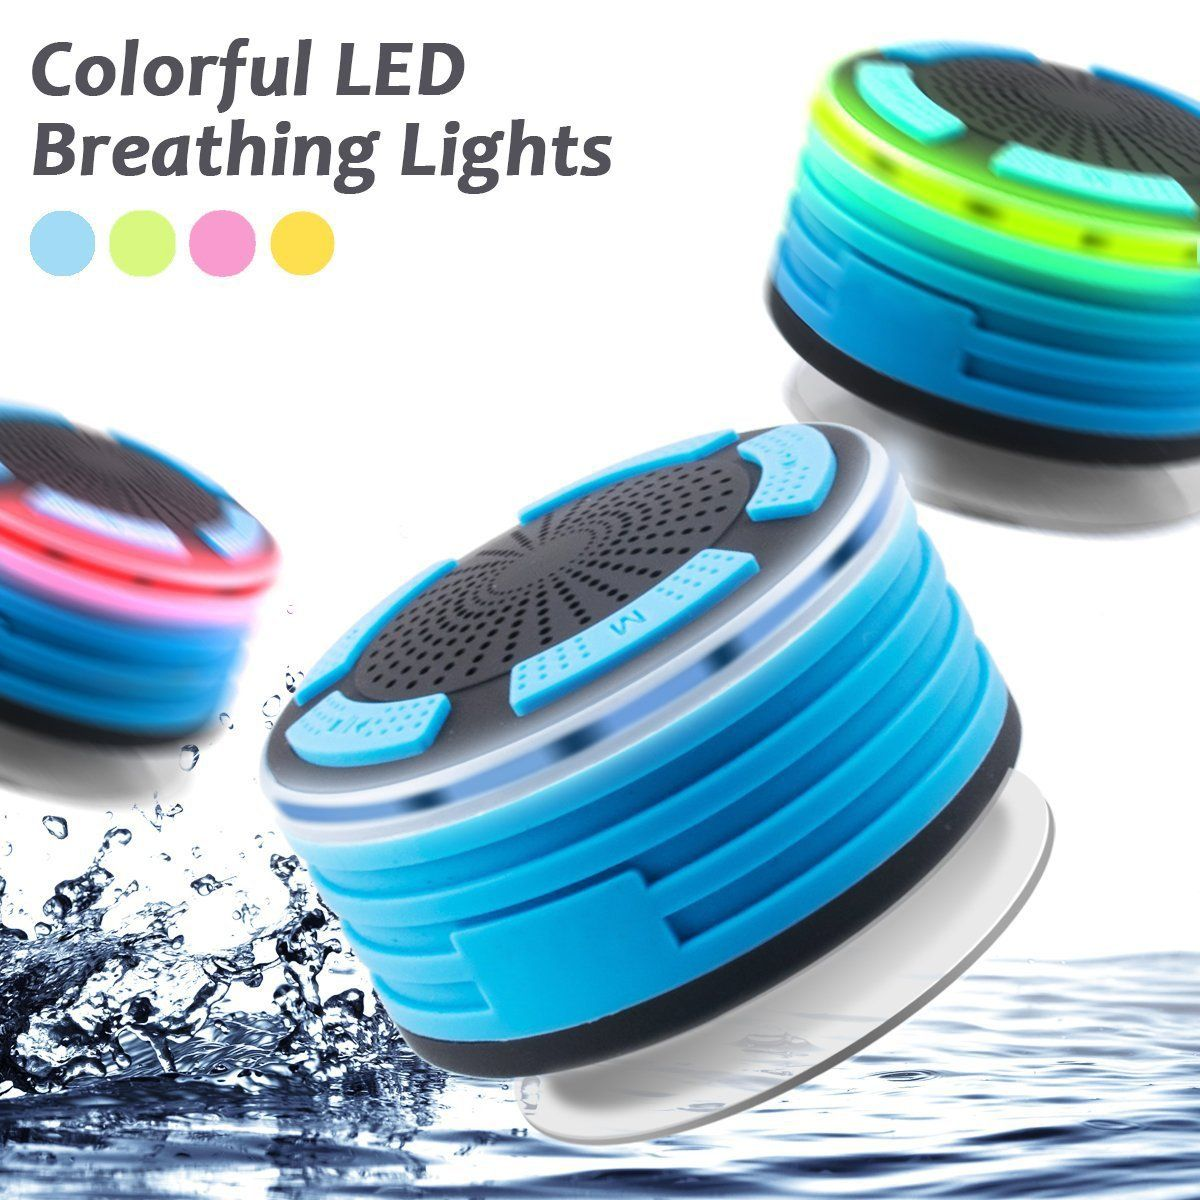 Bluetooth Shower Speaker Waterpoof Shower Radios With Light Wireless Bathroom Speaker With Fm Radios Suction Cup Portable Speaker For Show Shower Speaker Kids House Beach Pool